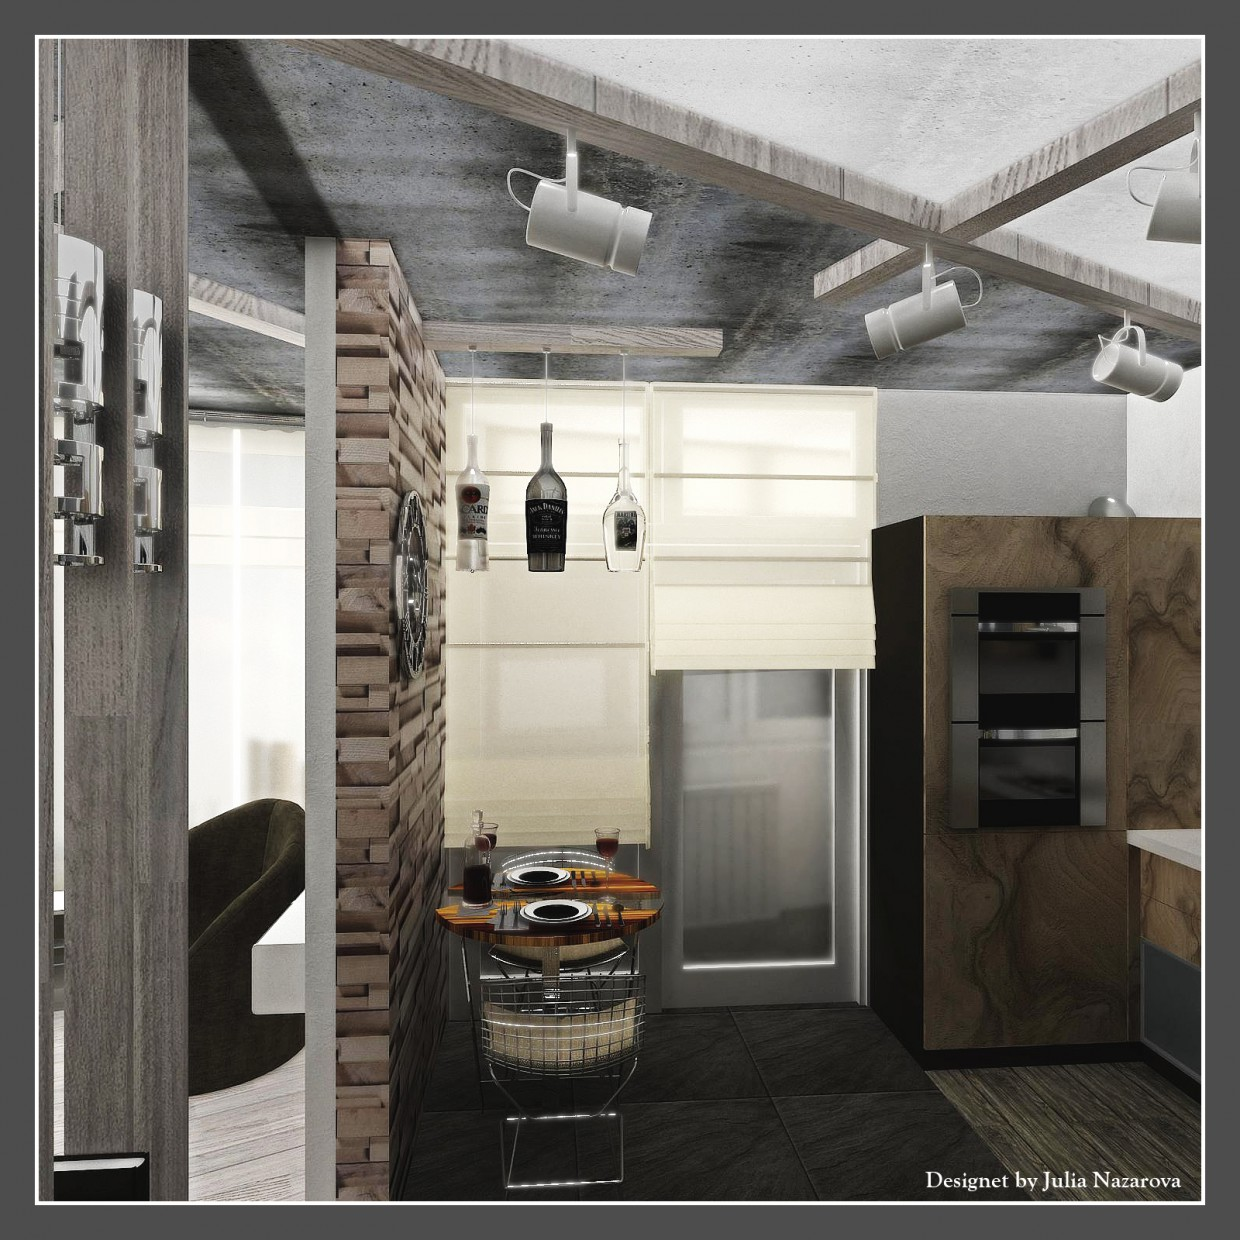 3d visualization of the project in the Kitchen 3d max, render vray 2.0 of jul-eta2009